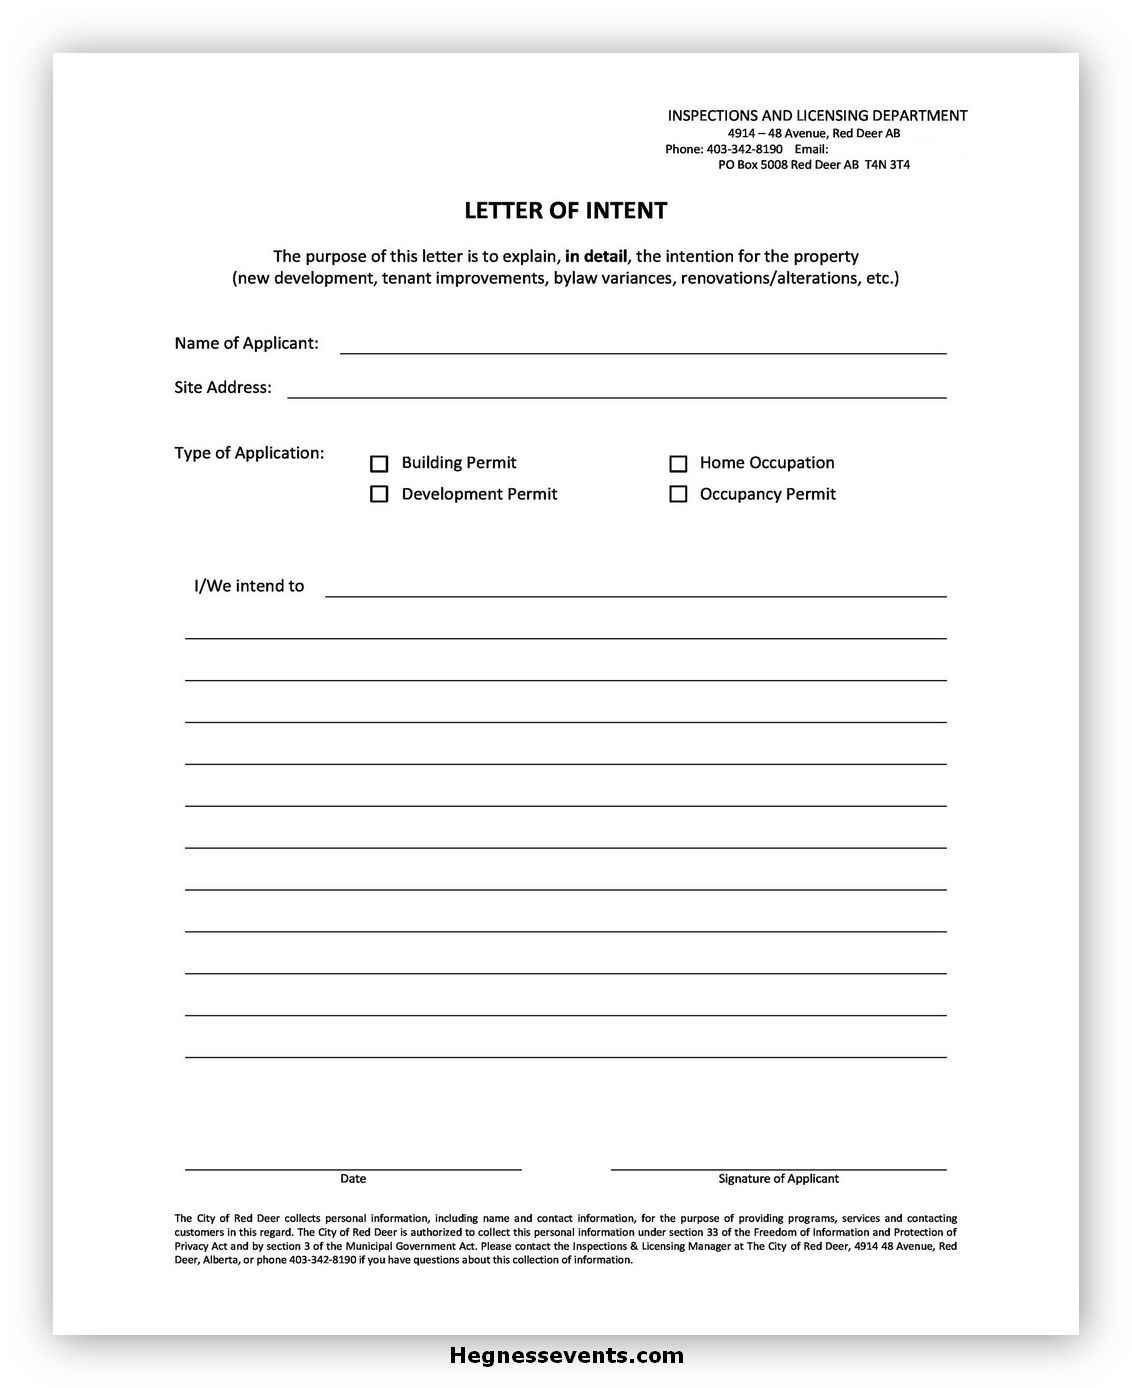 Letter of Intent Template 07